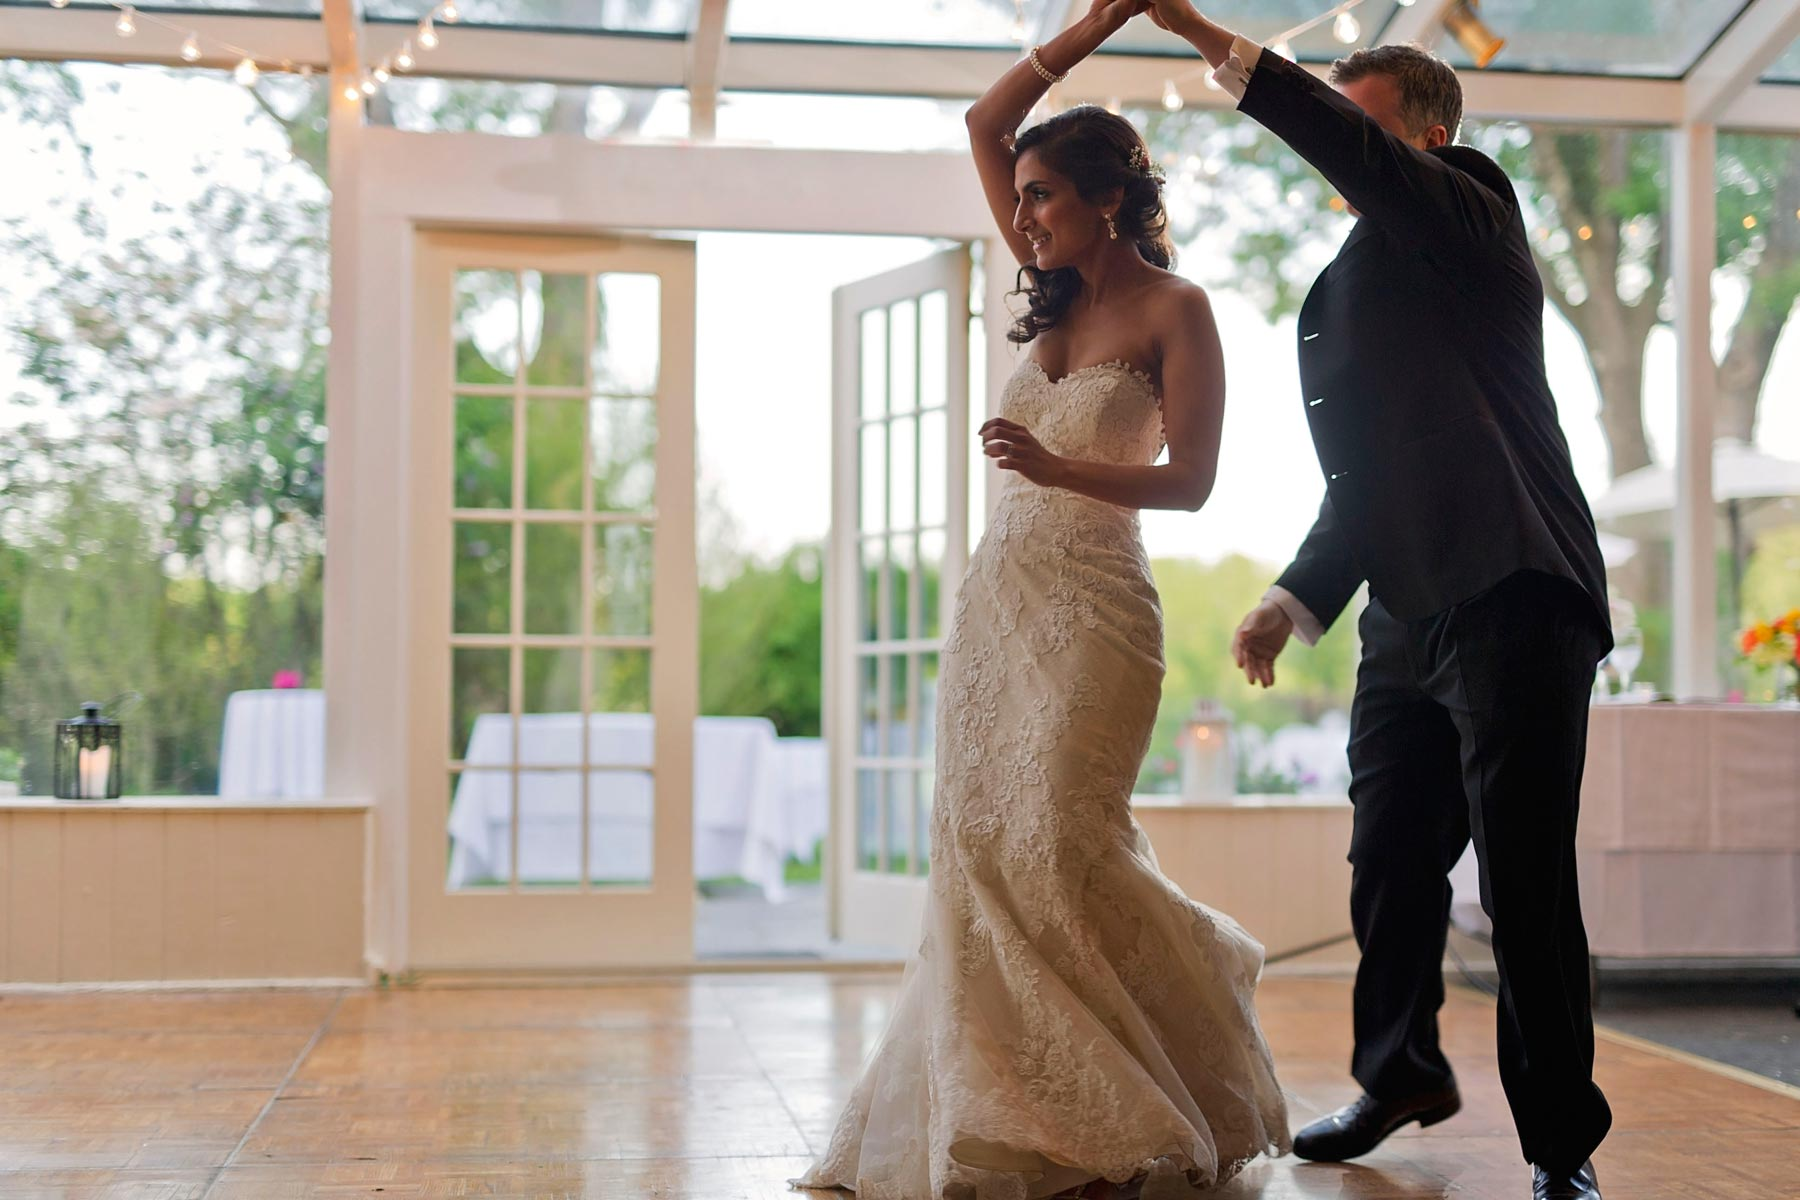 groom twirls bride during first dance